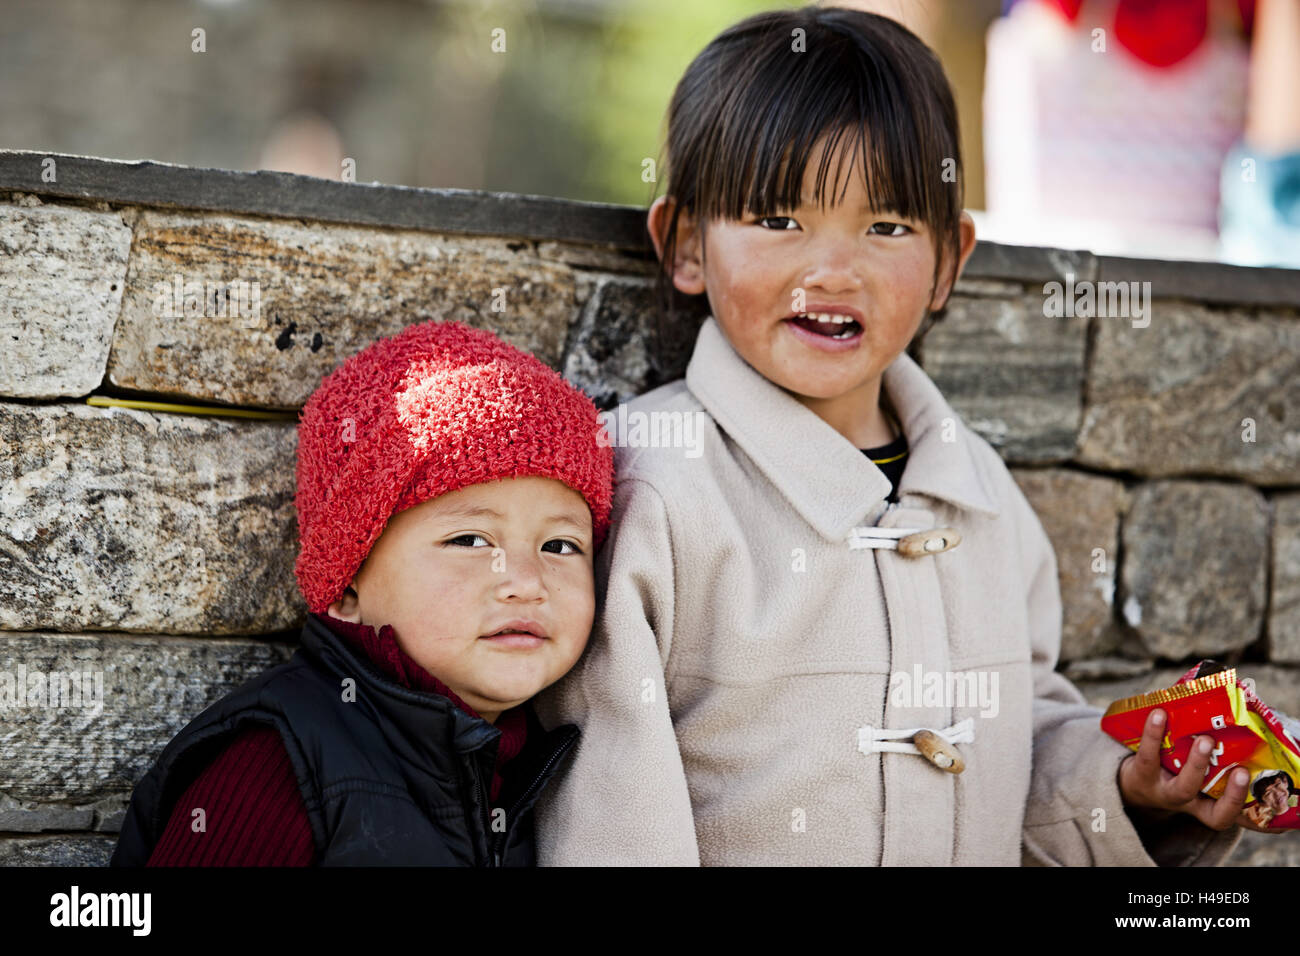 Kingdom Bhutan, Bhutan broad children, - Stock Image